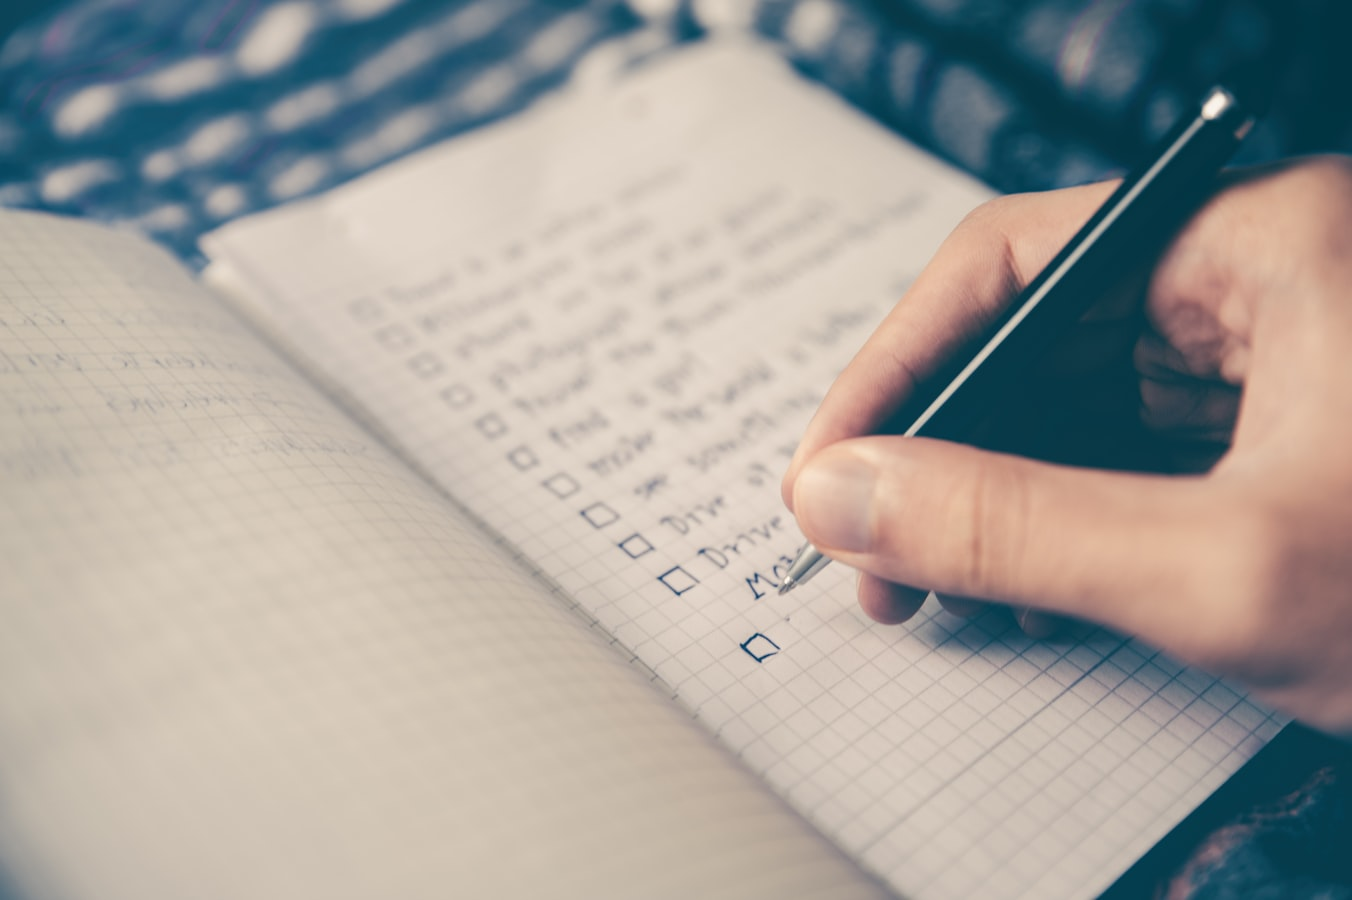 A person writing a checklist in a notebook